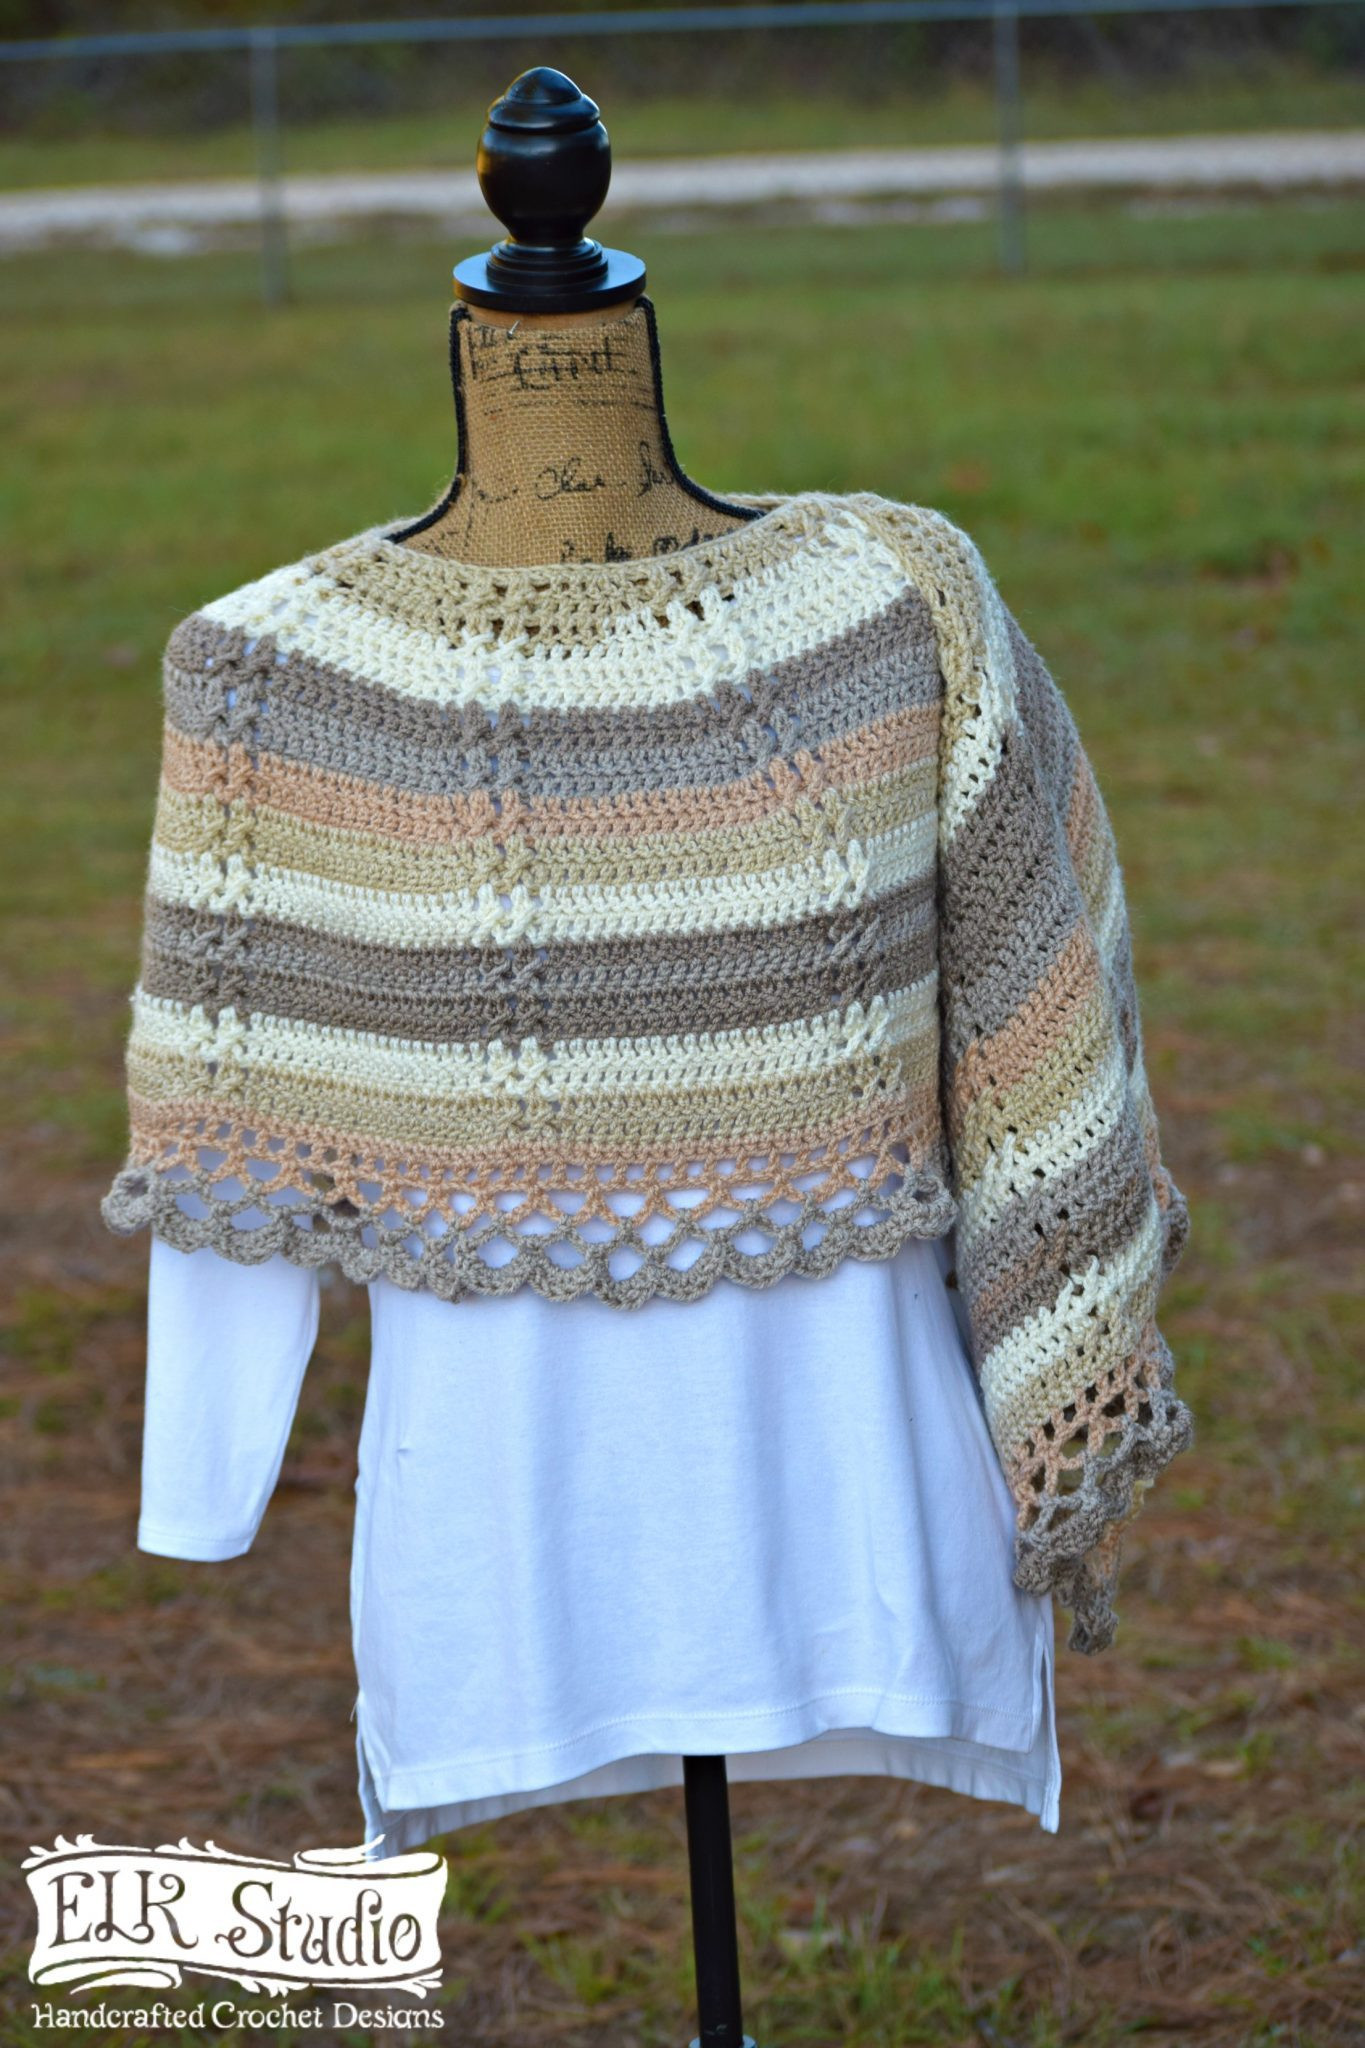 Caron Cakes and Delightfully Southern Shawl by ELK Studio